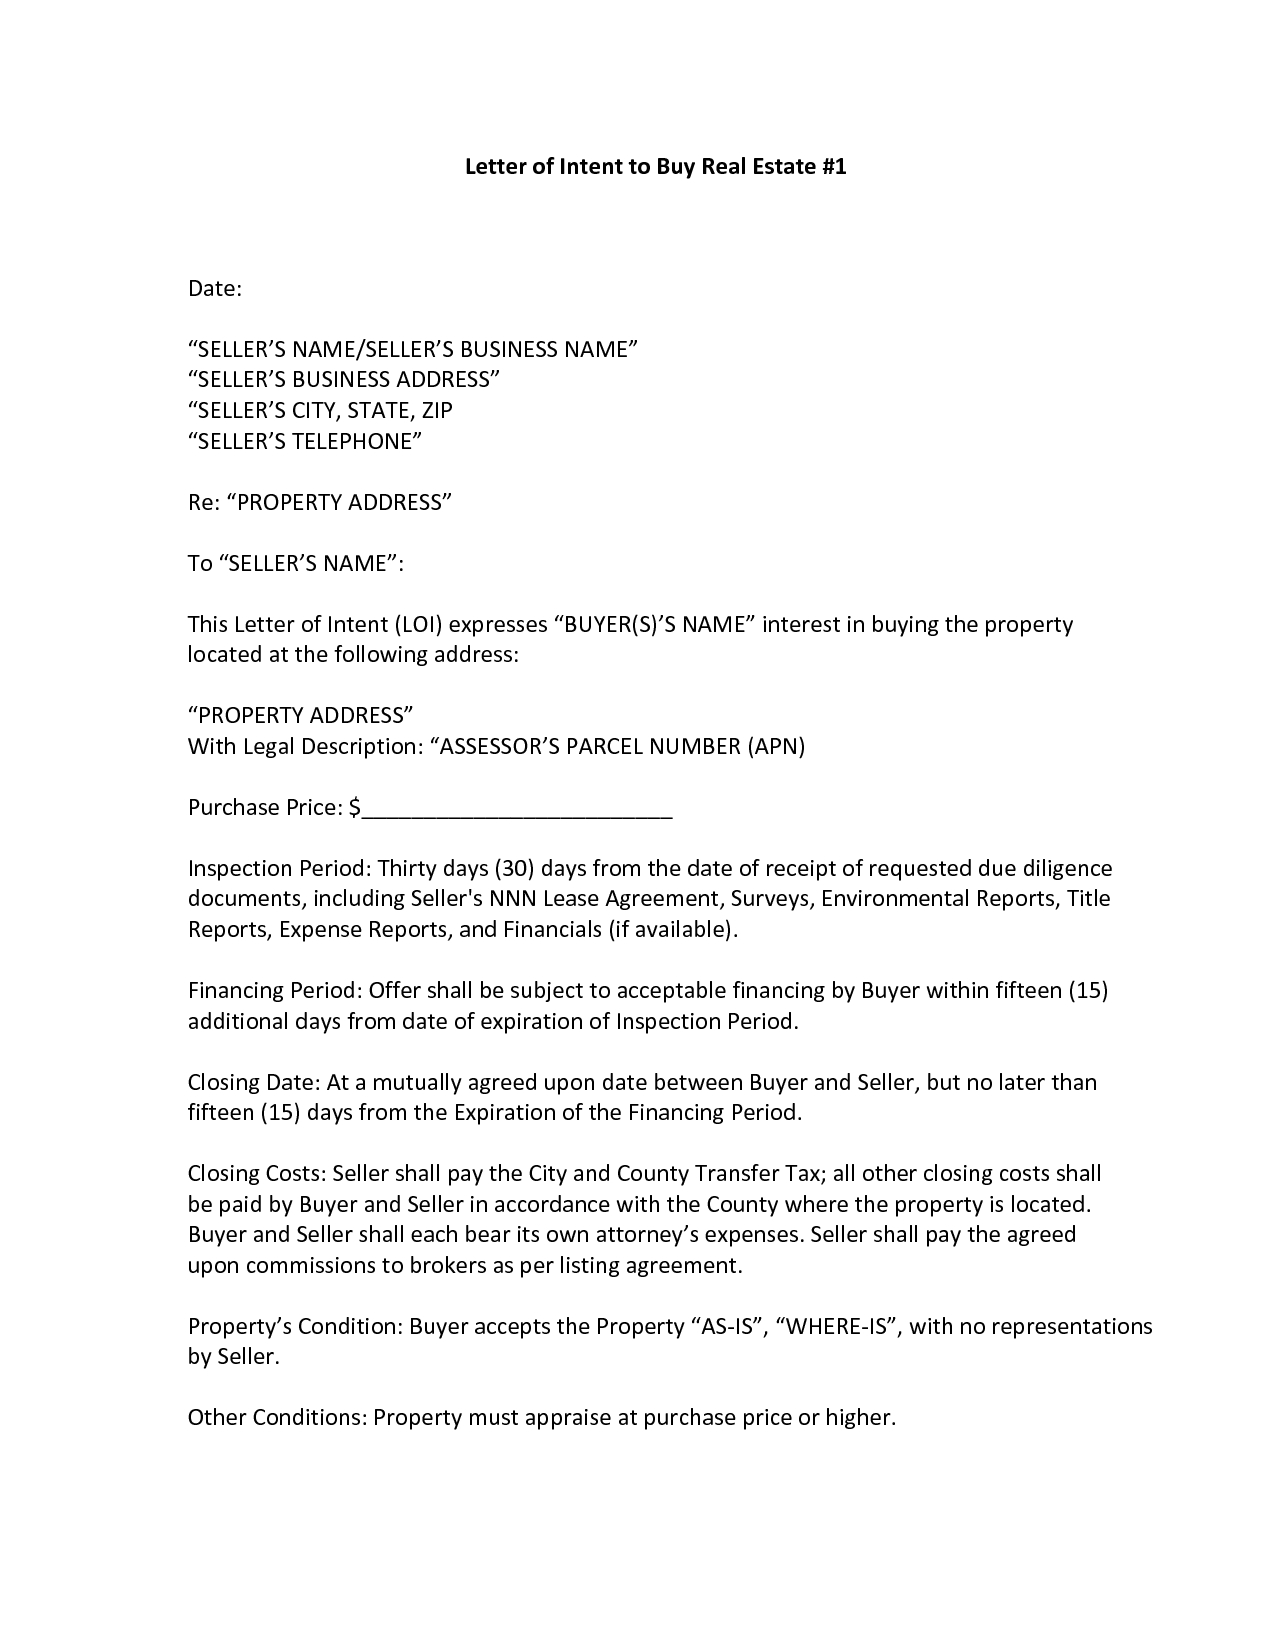 Letter Of Intent to Purchase Template - Sample Letter Intent Purchase Real Estate New Property Fer